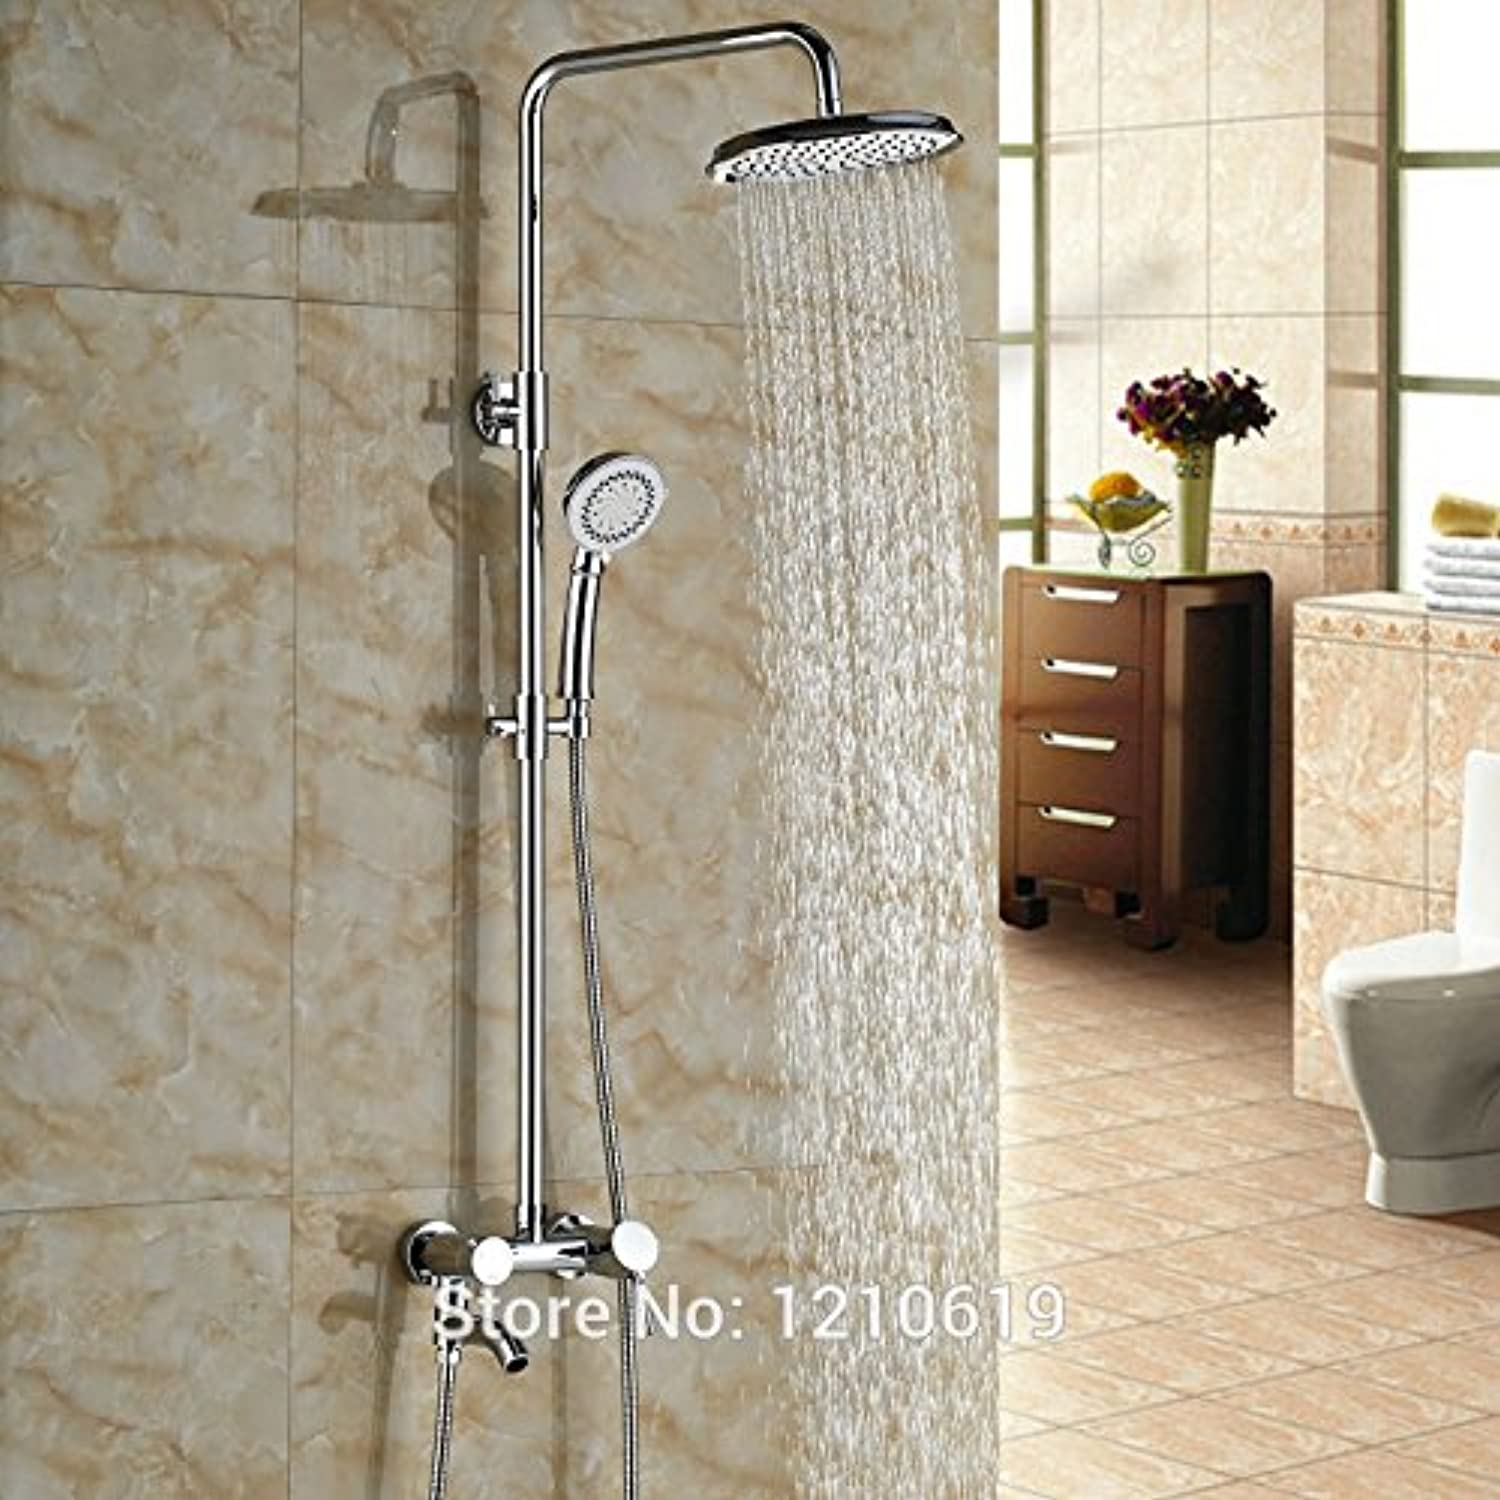 Maifeini The Latest Modern Style Bathrooms Are Shower Mixer Wall Polished Chrome-Shower Mixer Taps With Manual Injection, Multiple